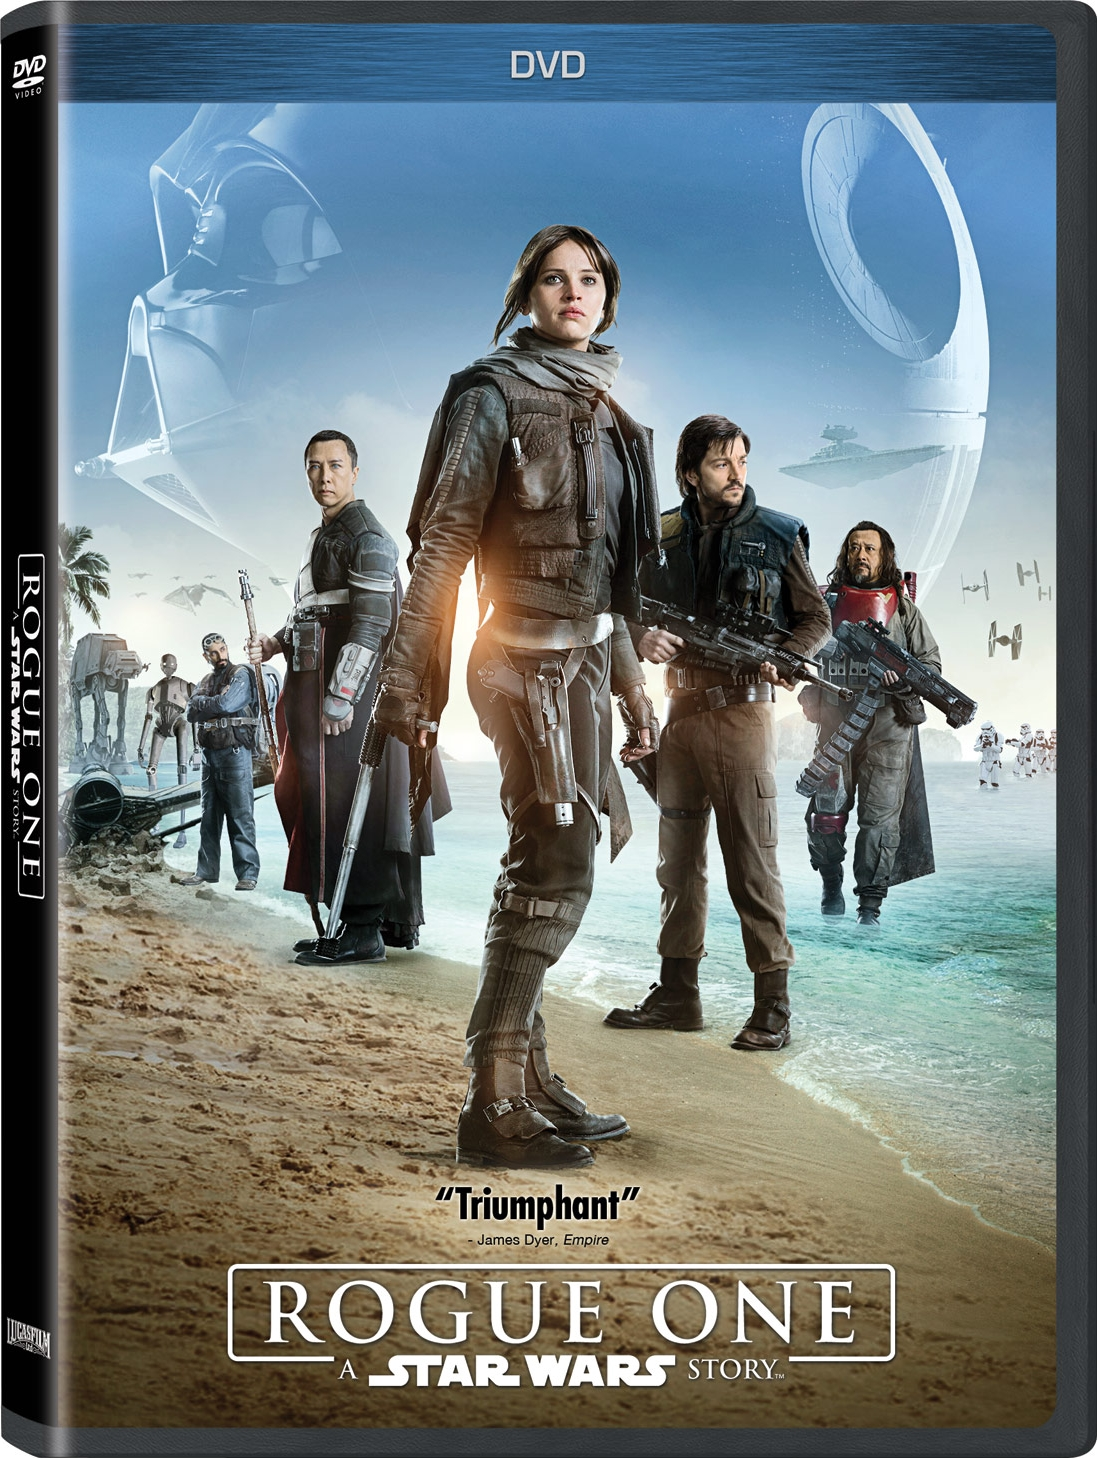 Rogue One (video)